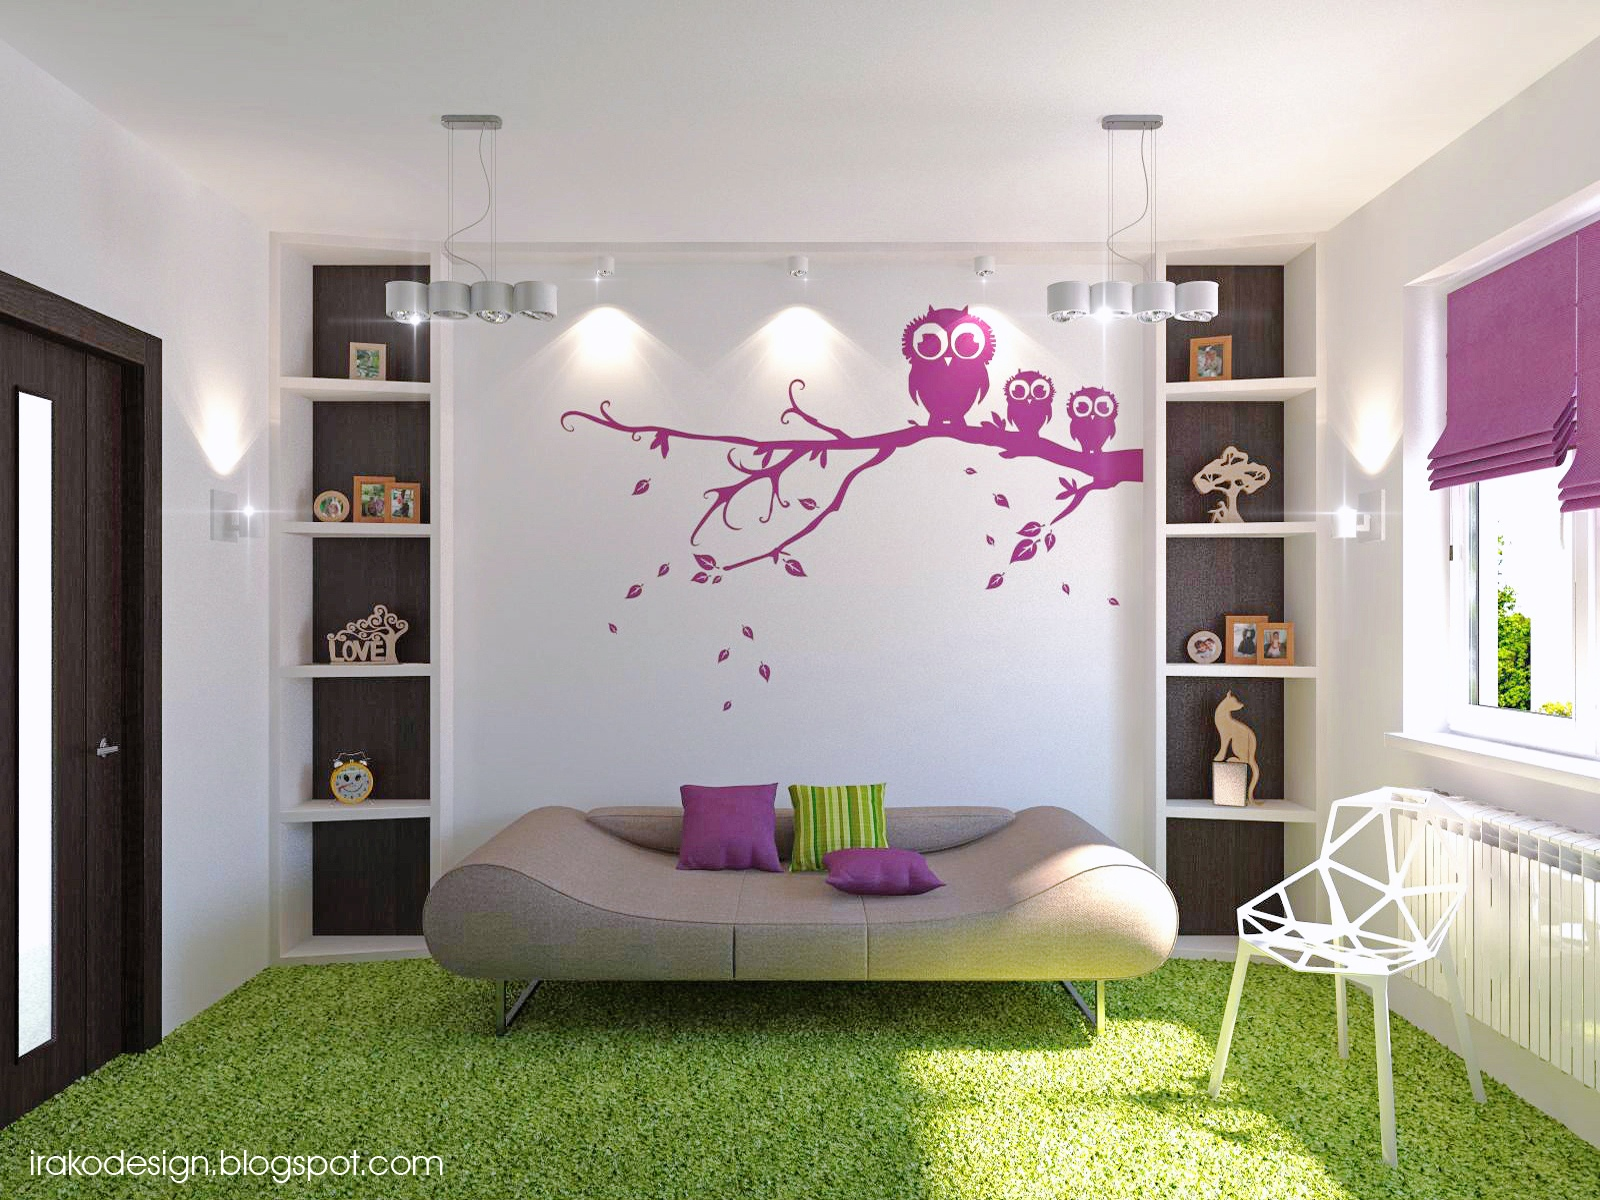 Room Design Ideas cute girls rooms rooms design ideas rooms design ideas Cute Girls Rooms Rooms Design Ideas Rooms Design Ideas